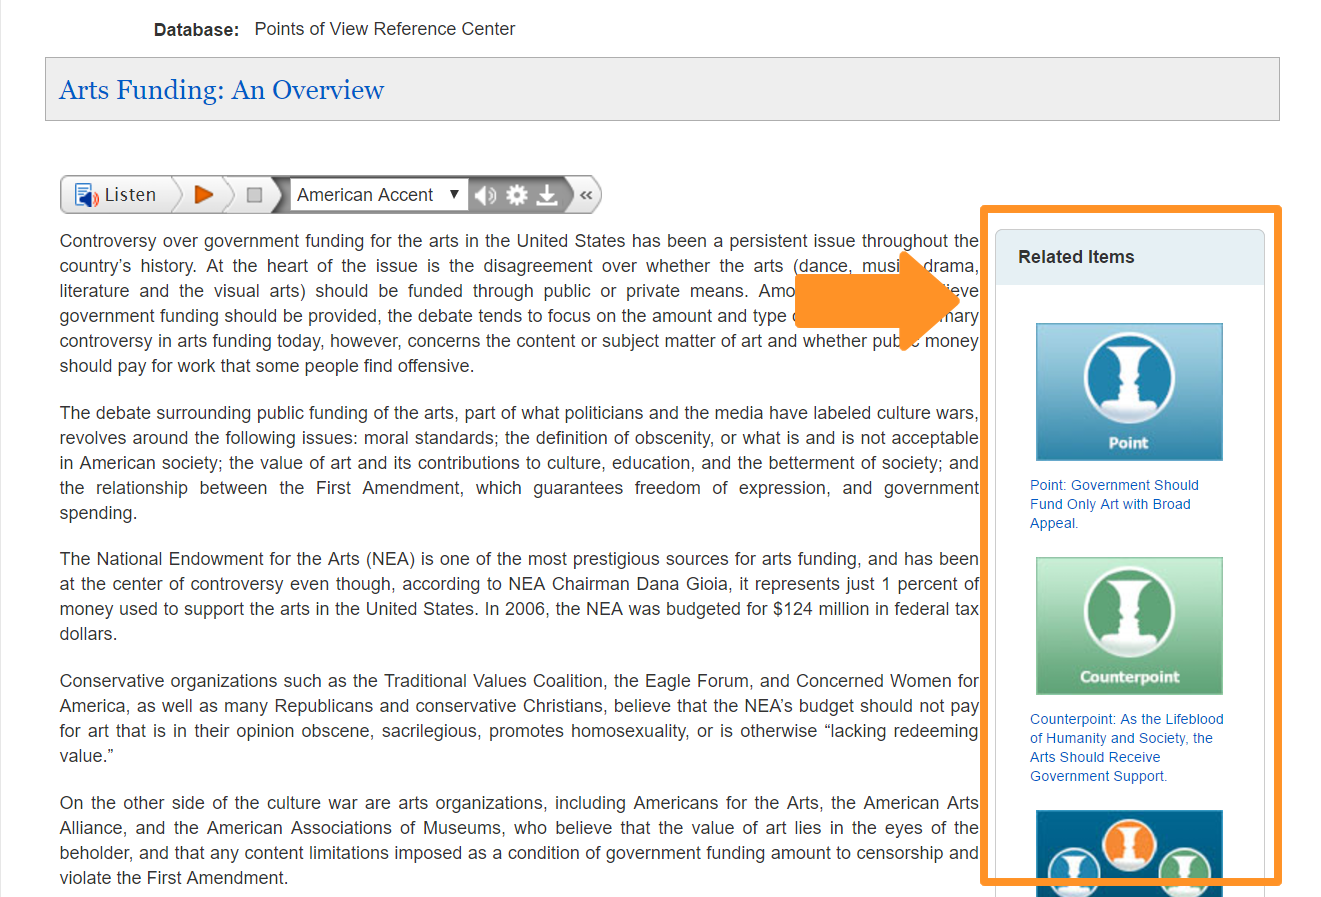 This image shows that the related items area is on the right hand side of the page.